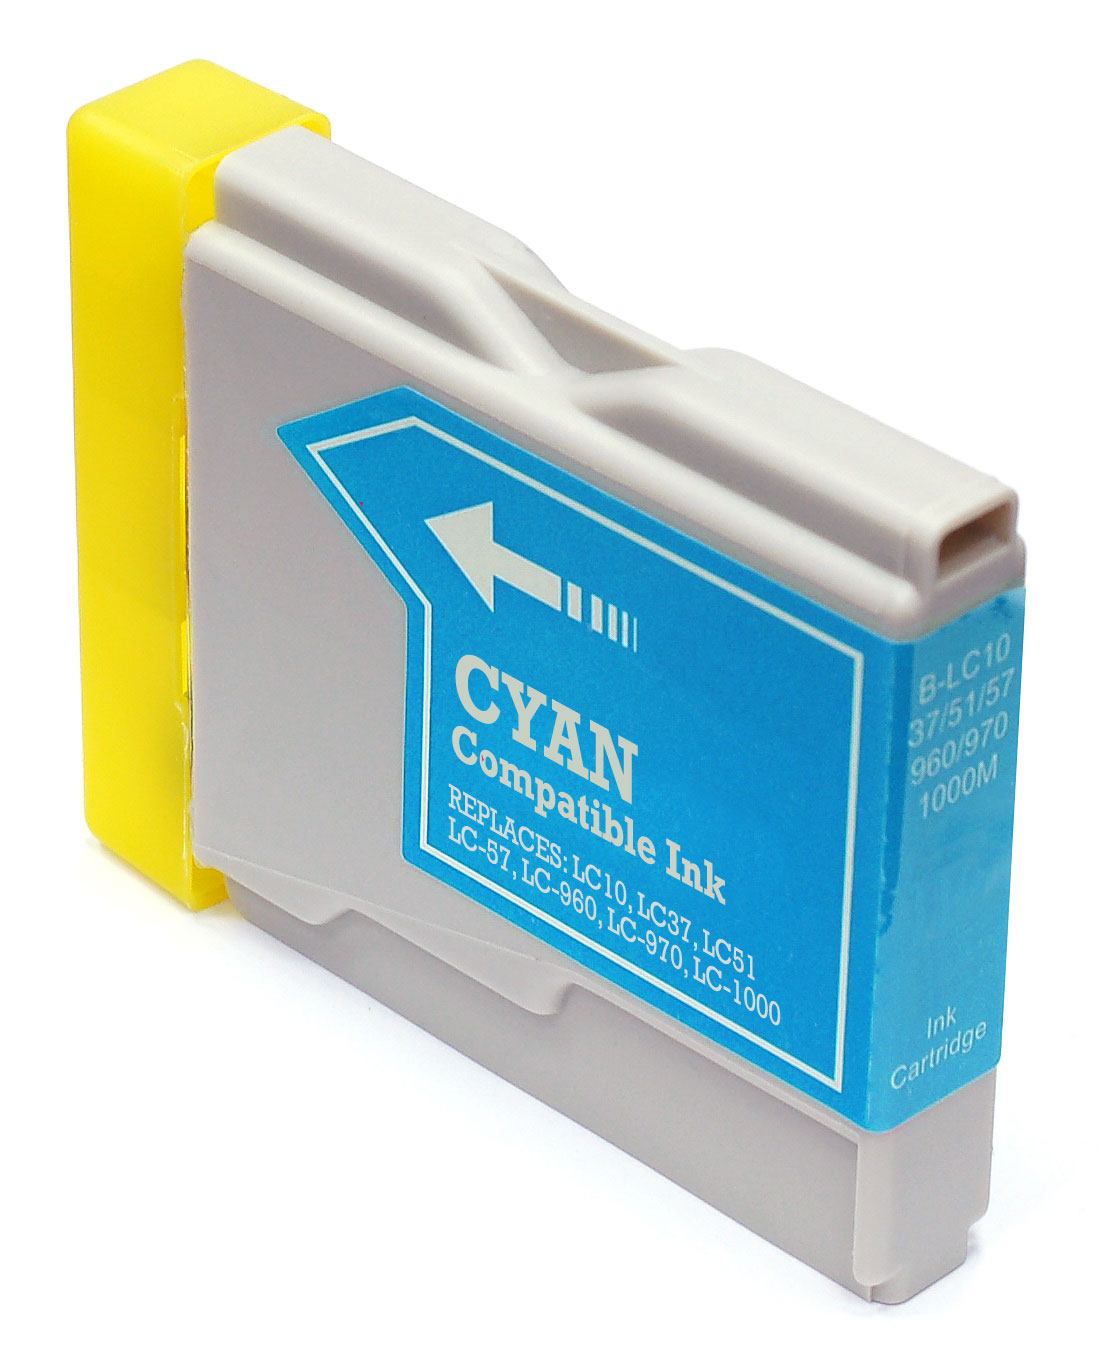 Cartus cerneala Brother LC10, LC37, LC51, LC57, LC960, LC970, LC1000 Cyan, Compatibil